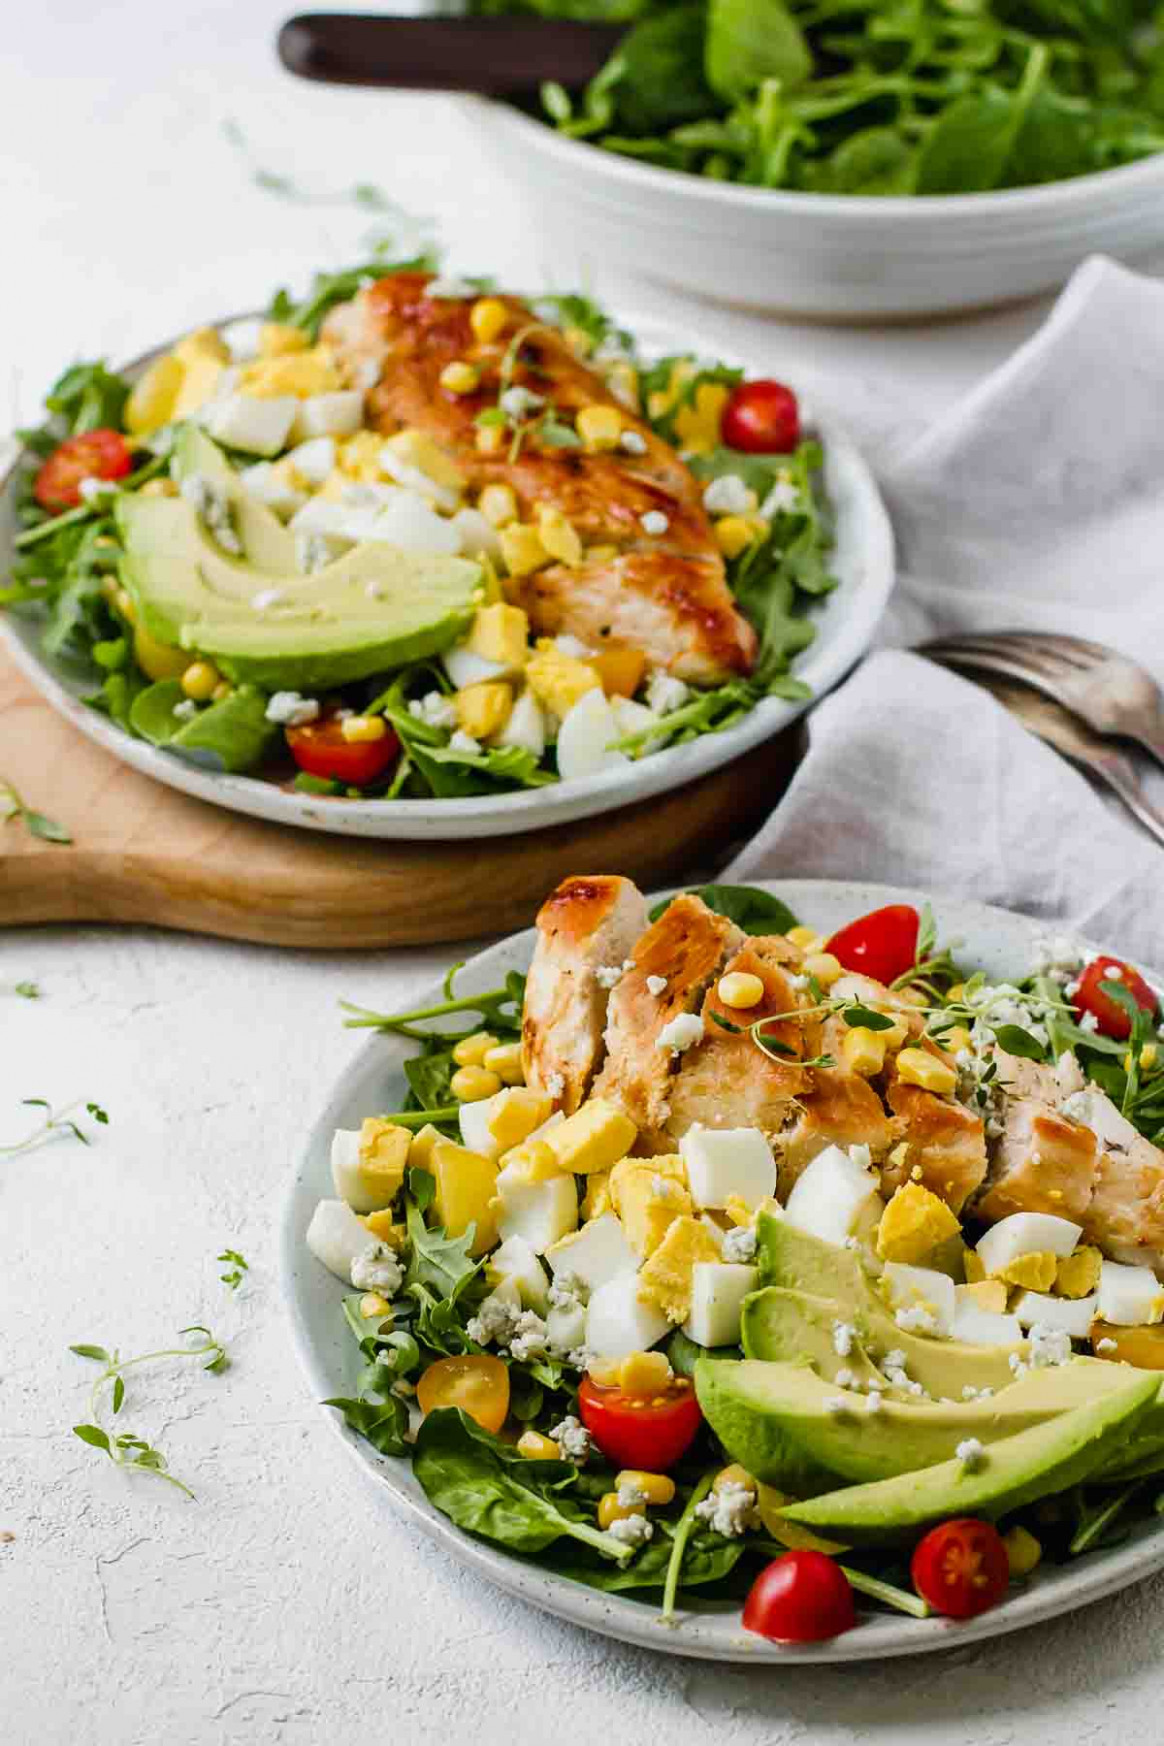 11+ Quick Healthy Dinners (11 Minutes Or Less) - Jar Of Lemons - Yummy Recipes Dinner